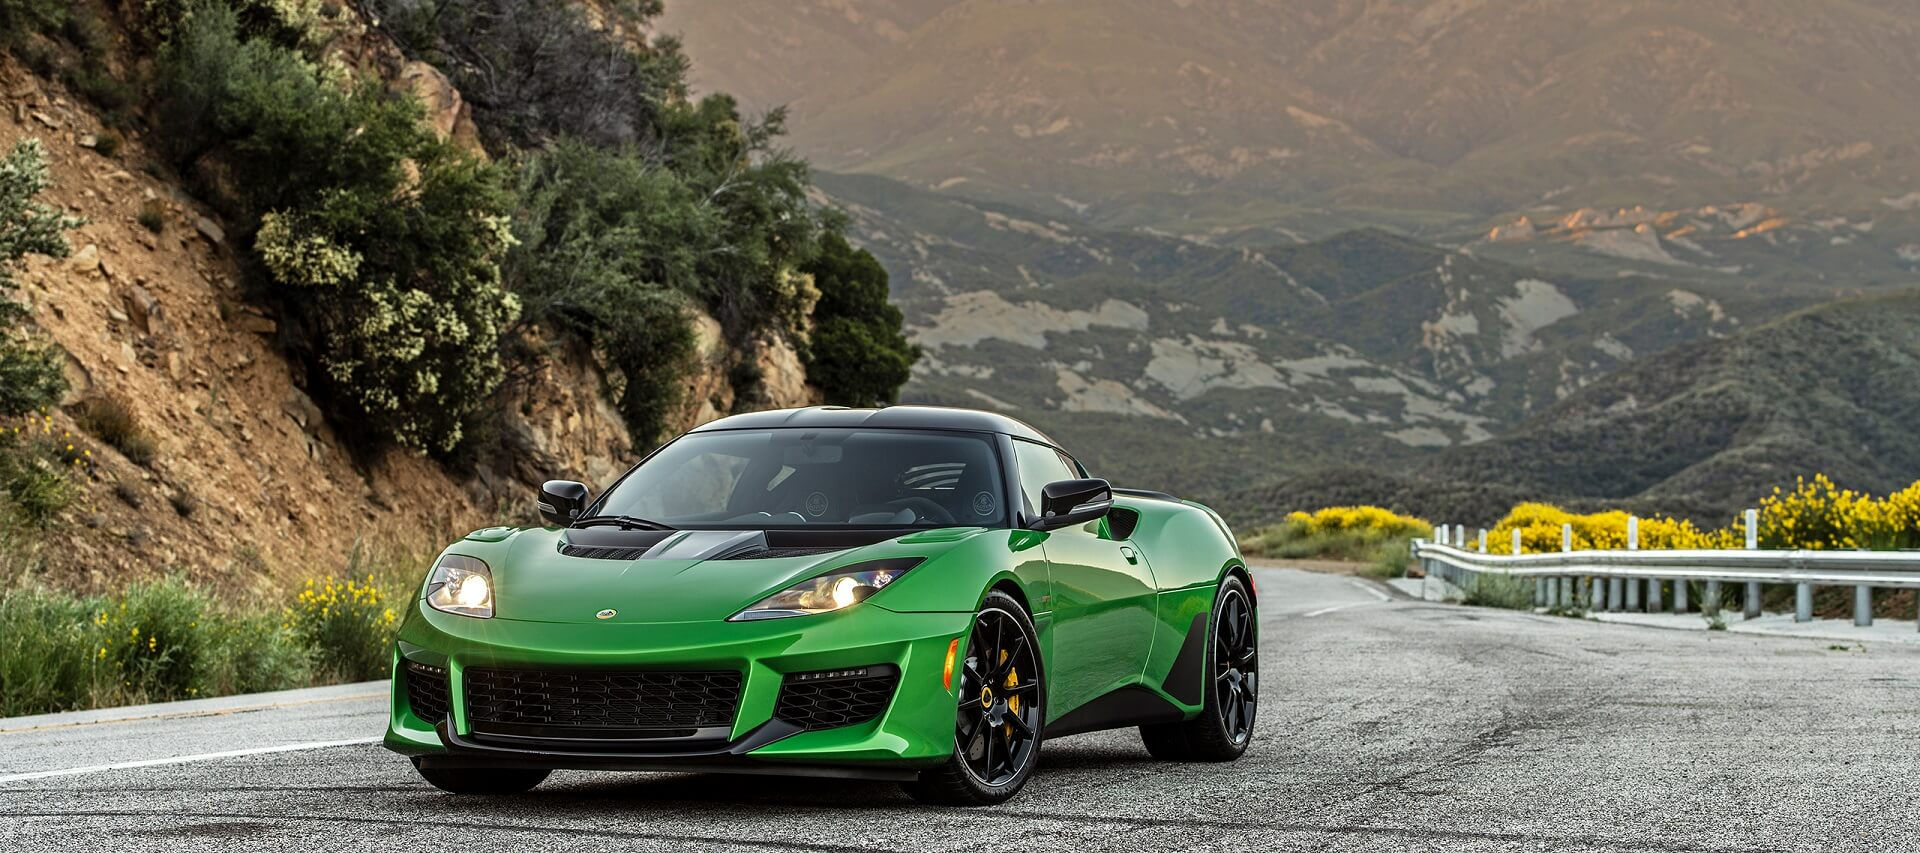 Lotus News: 2020 Lotus Evora GT First Drive Analog